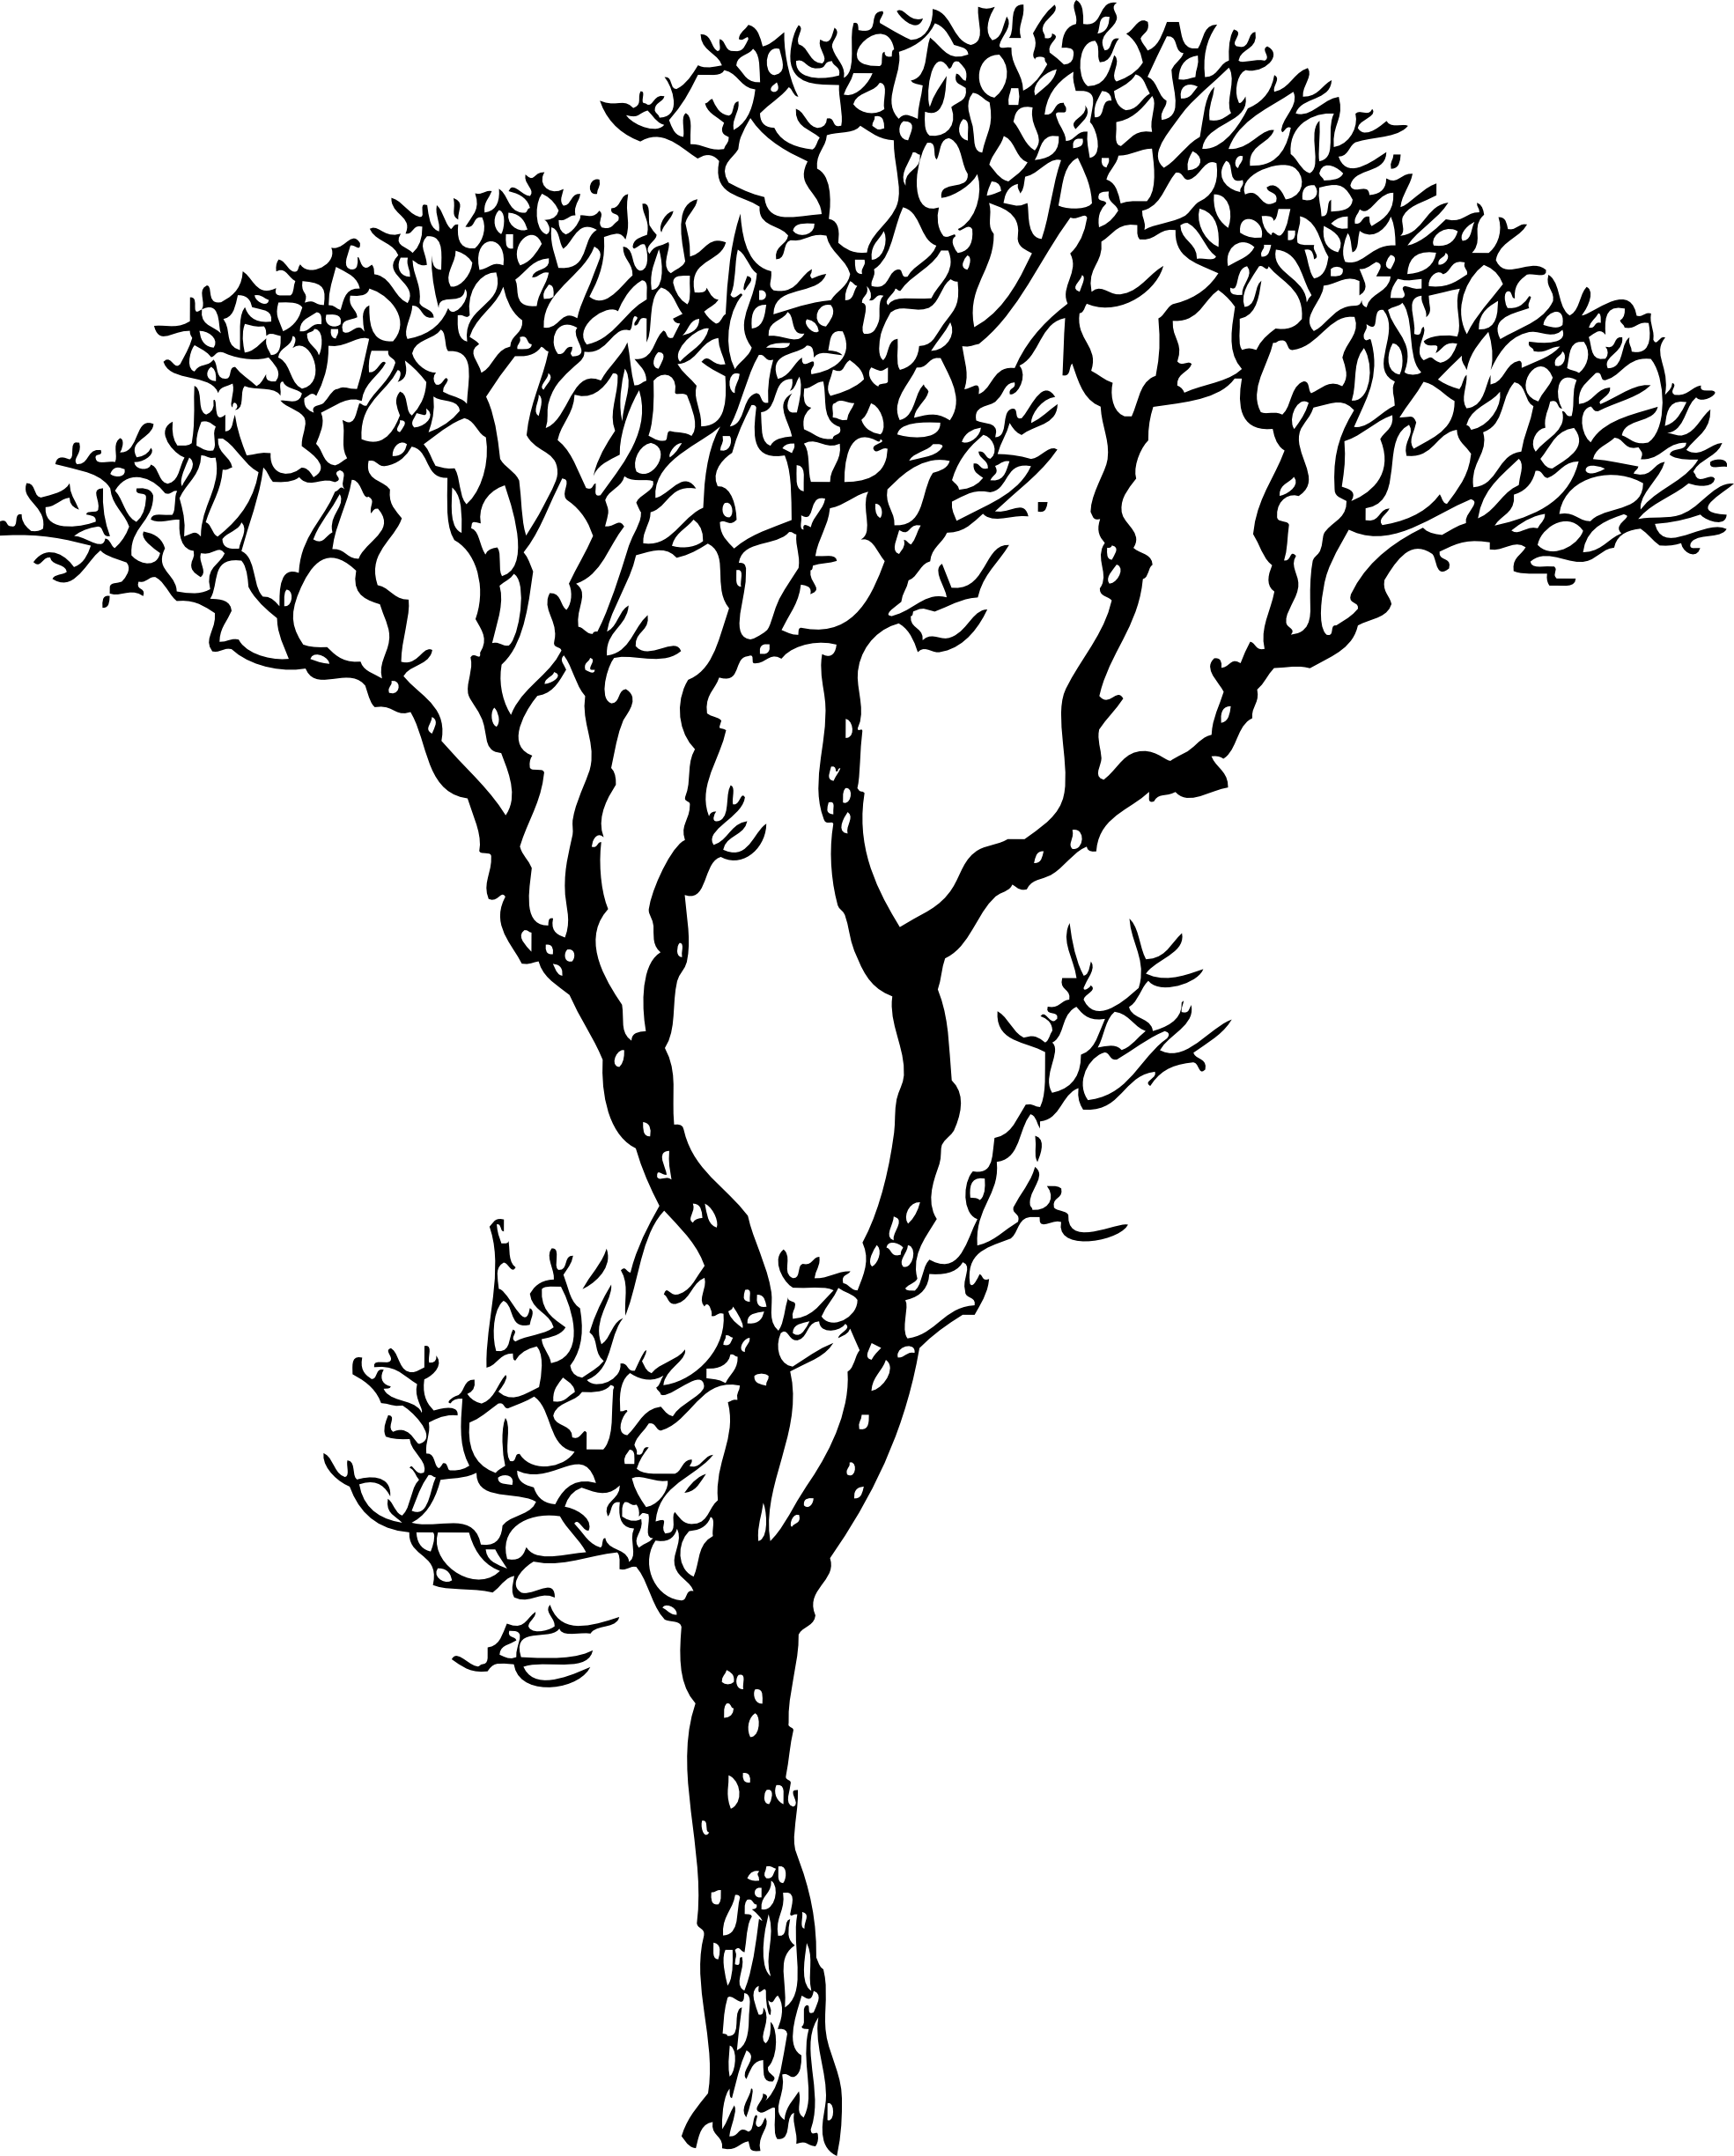 Bare tree black and white clipart